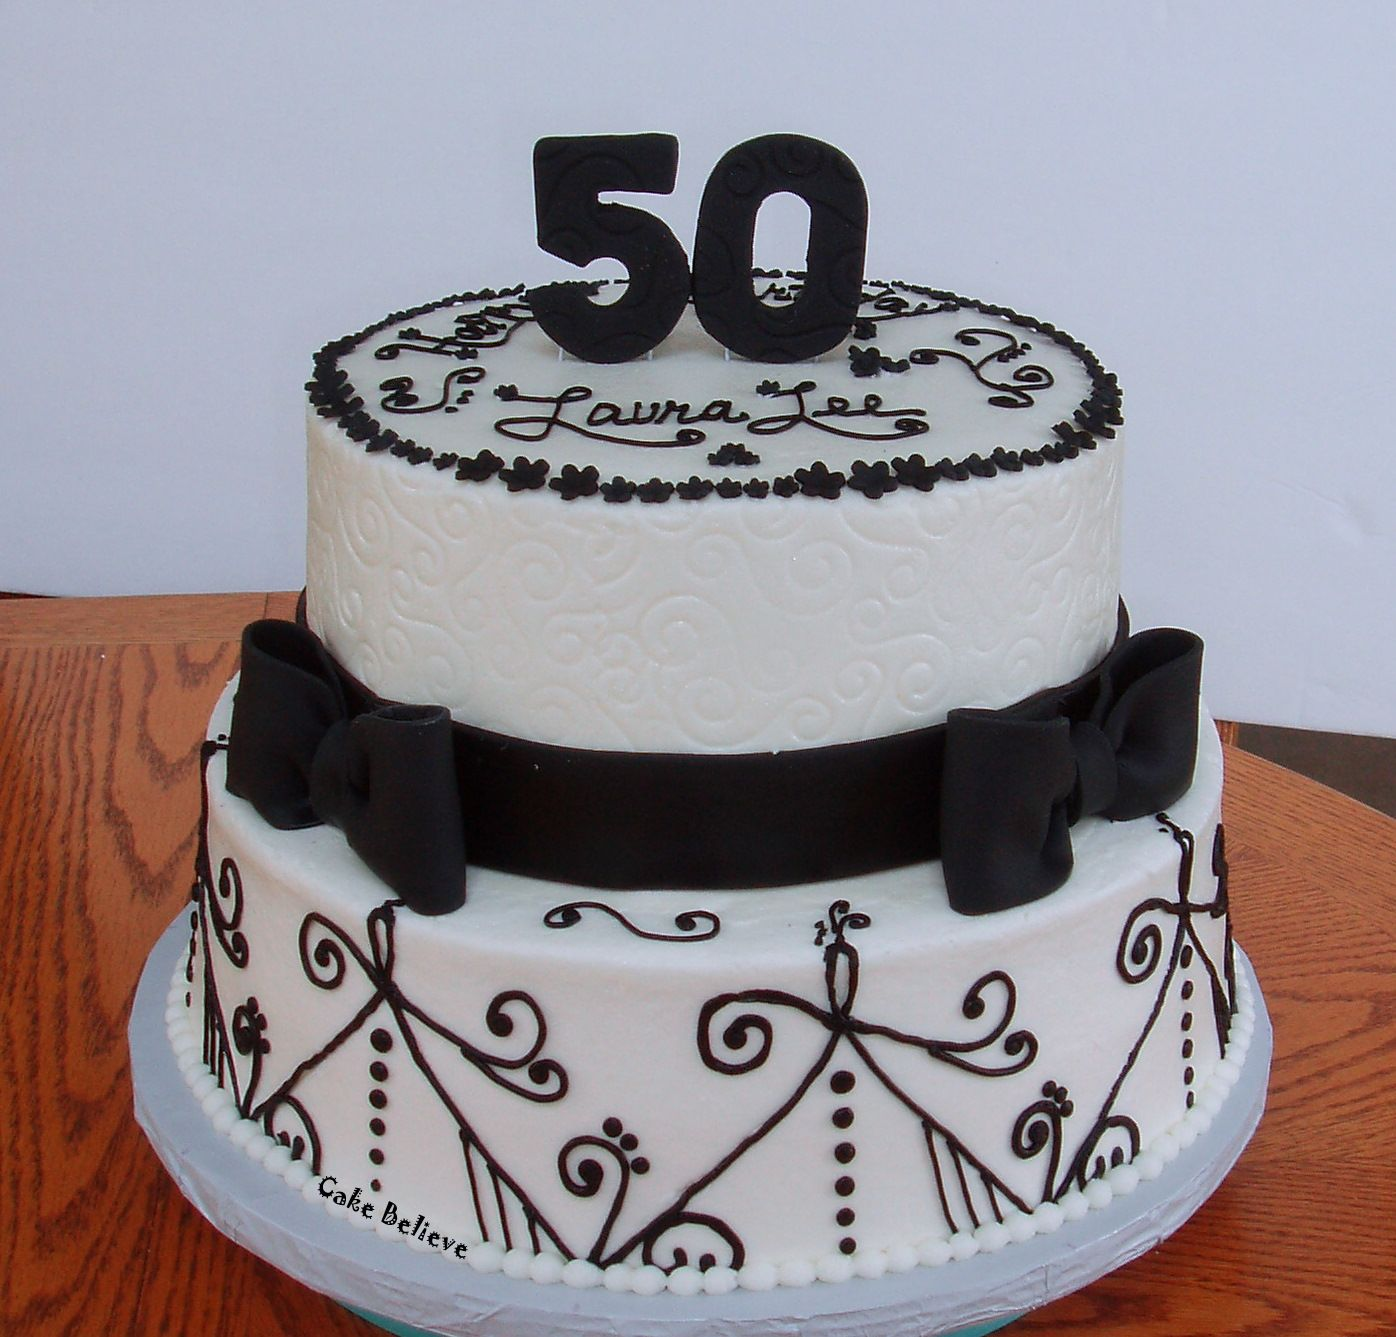 Enjoyable 50Th Birthday Cake In Black And White Coloring With Unique Motif Funny Birthday Cards Online Alyptdamsfinfo